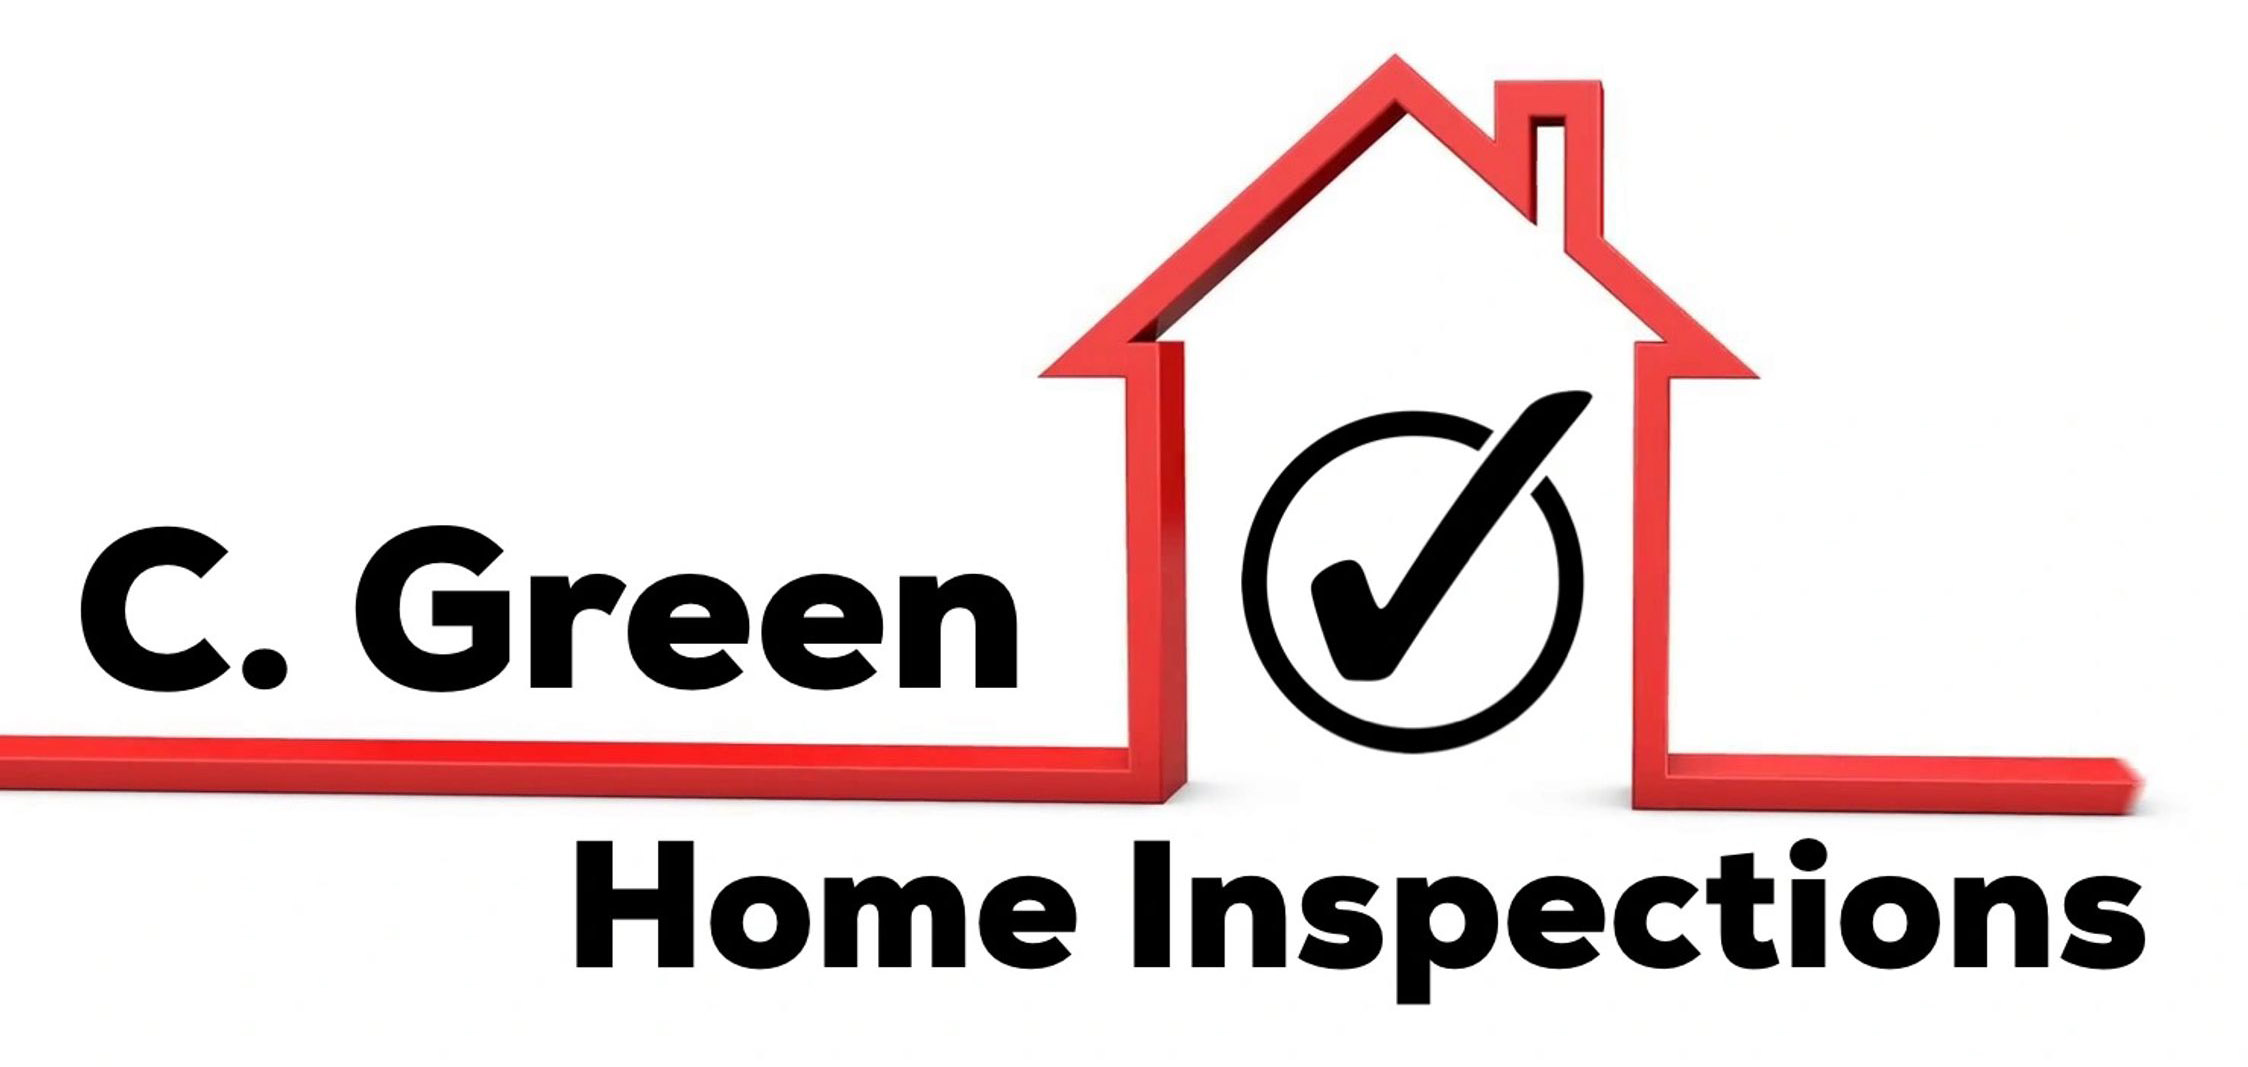 C Green Home Inspection